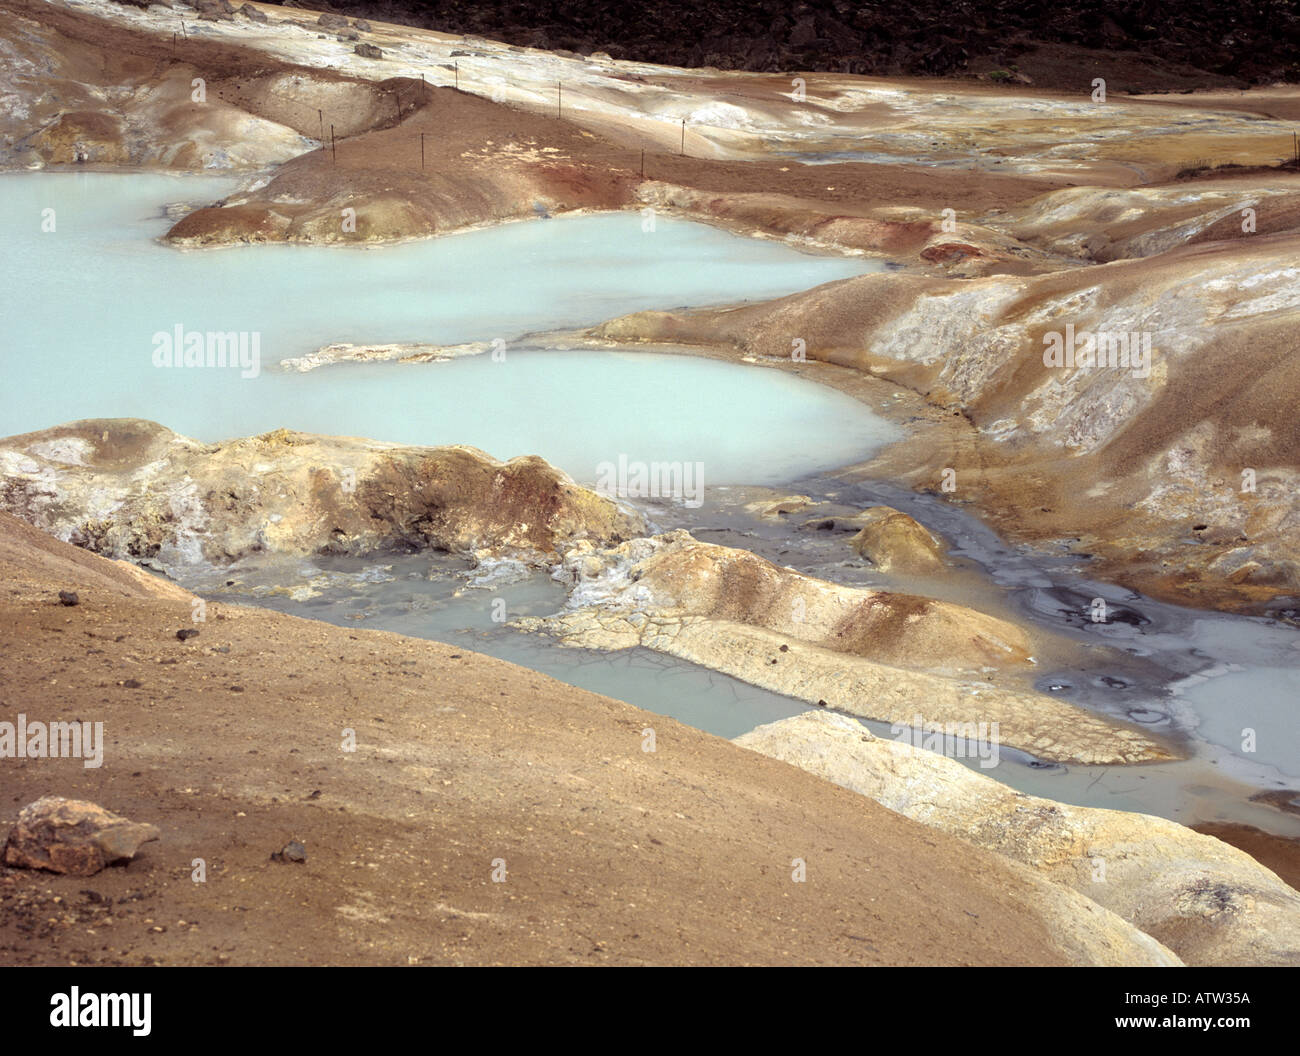 NAMAFJALL ICELAND EUROPE July High temperature geothermal area with black lava fumeroles mud pots and sulphur deposits Stock Photo